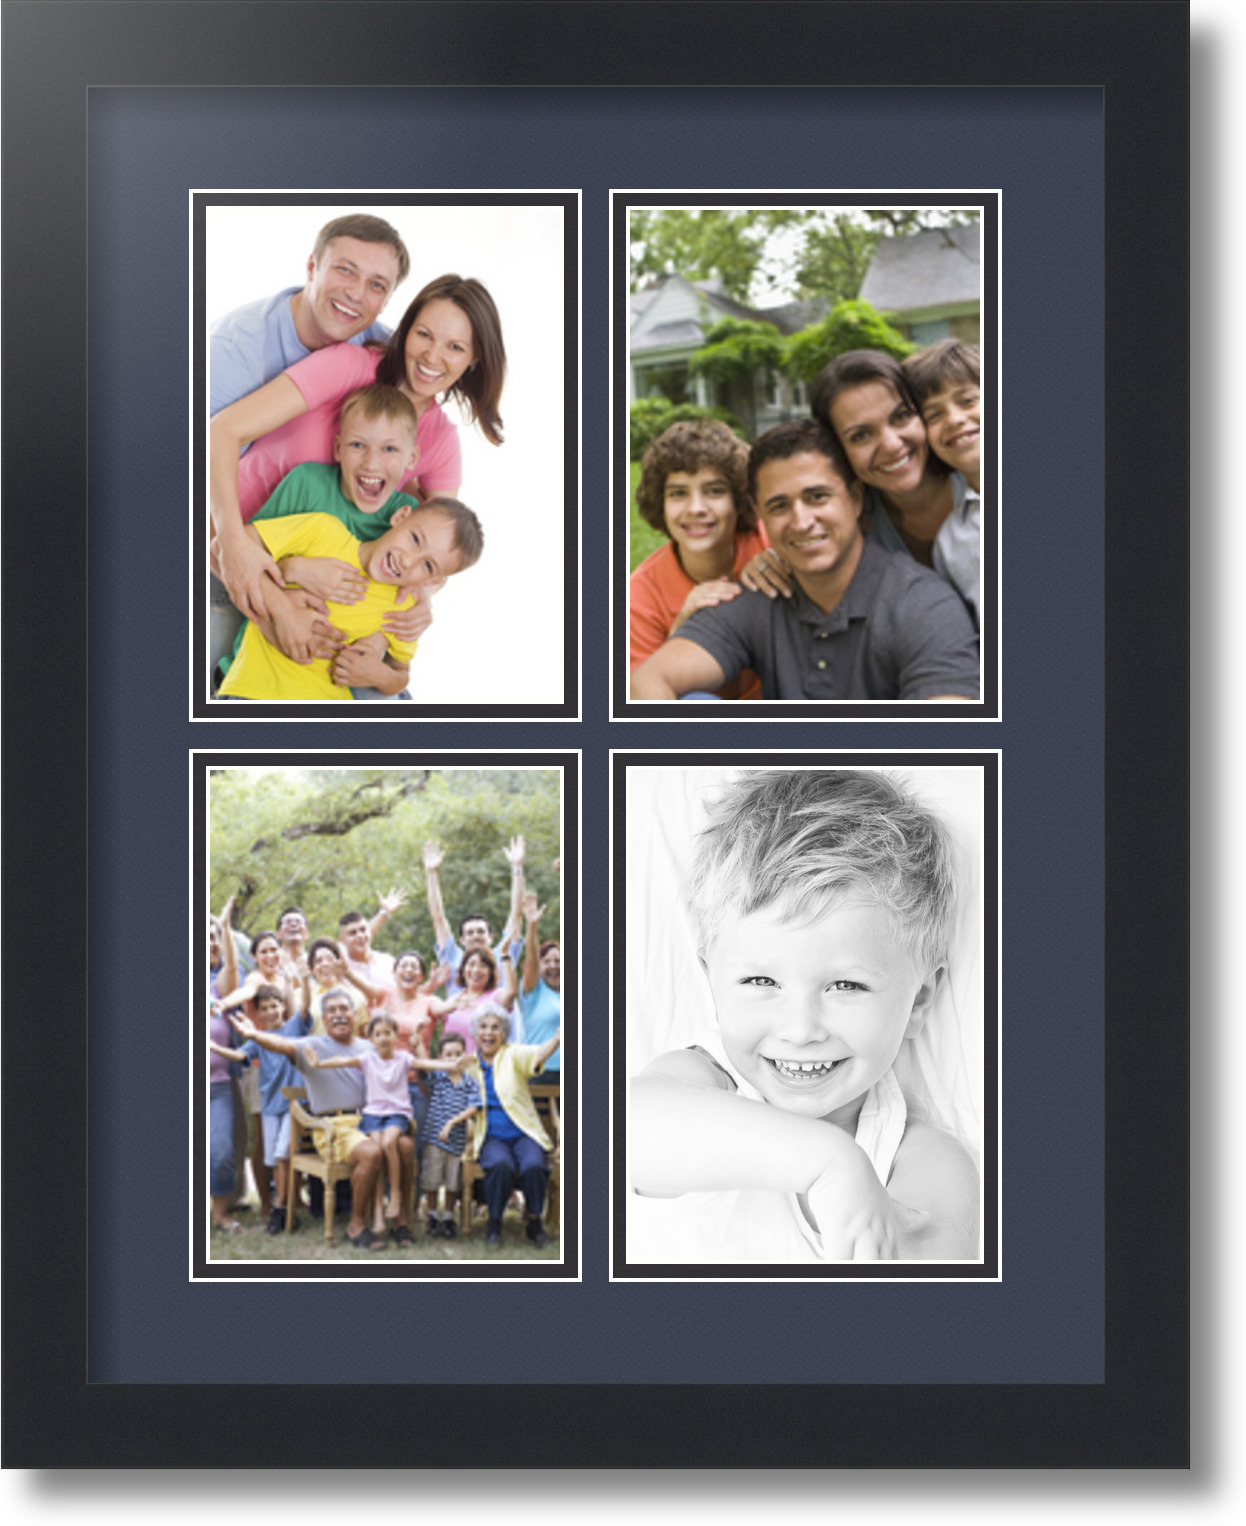 Arttoframes collage mat picture photo frame 4 5x7 openings in arttoframes collage mat picture photo frame 4 5x7 jeuxipadfo Gallery